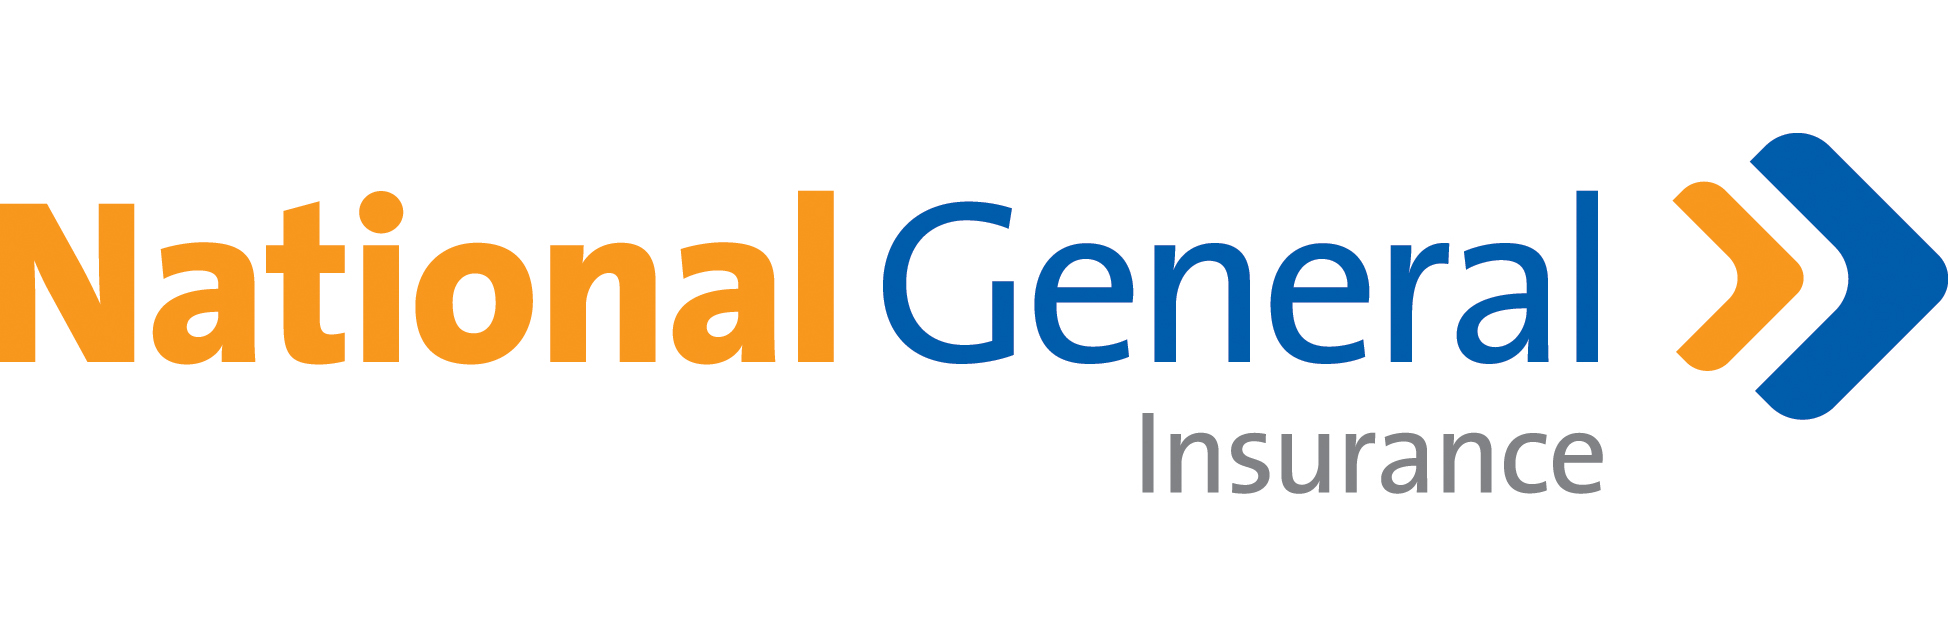 NationalGeneralLogo